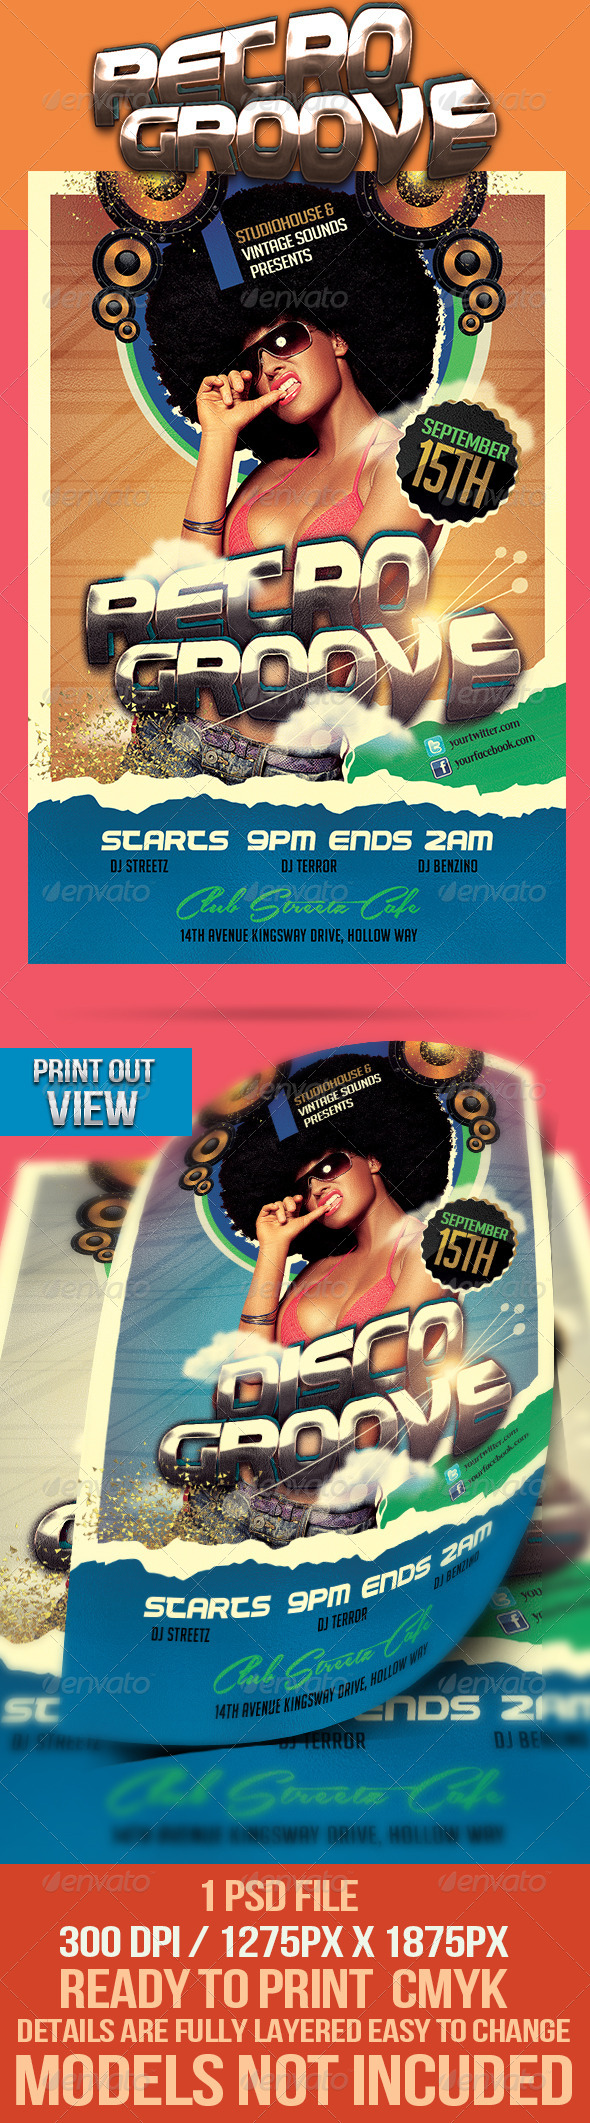 Retro Groove Party Flyer - Clubs & Parties Events